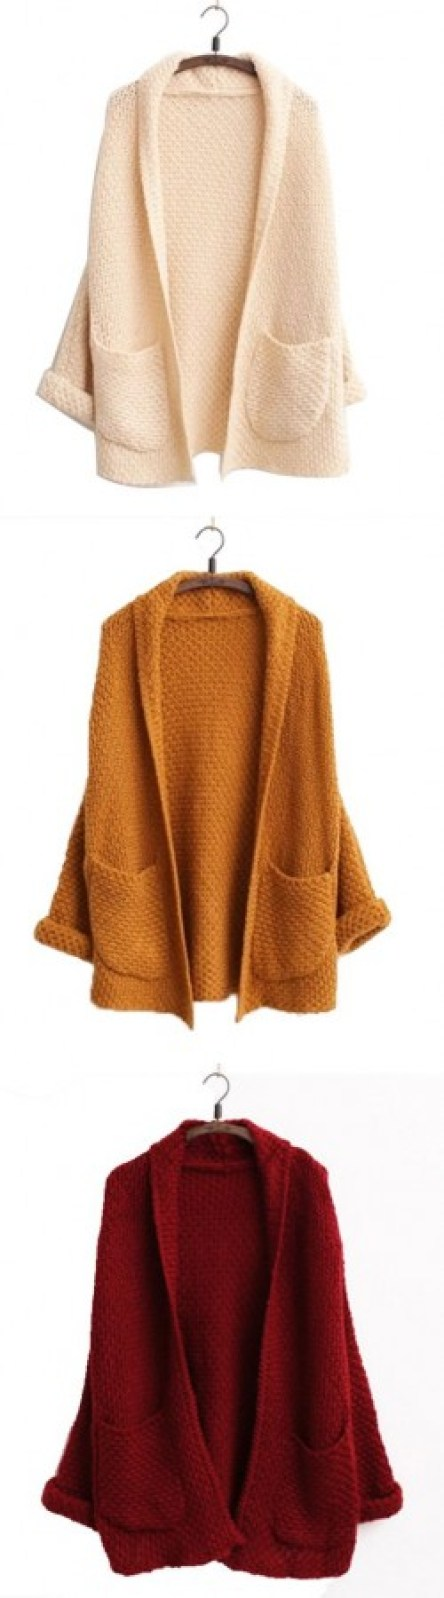 CUPSHE - THIS SWEATER IS ON MY TO-DO LIST!!!